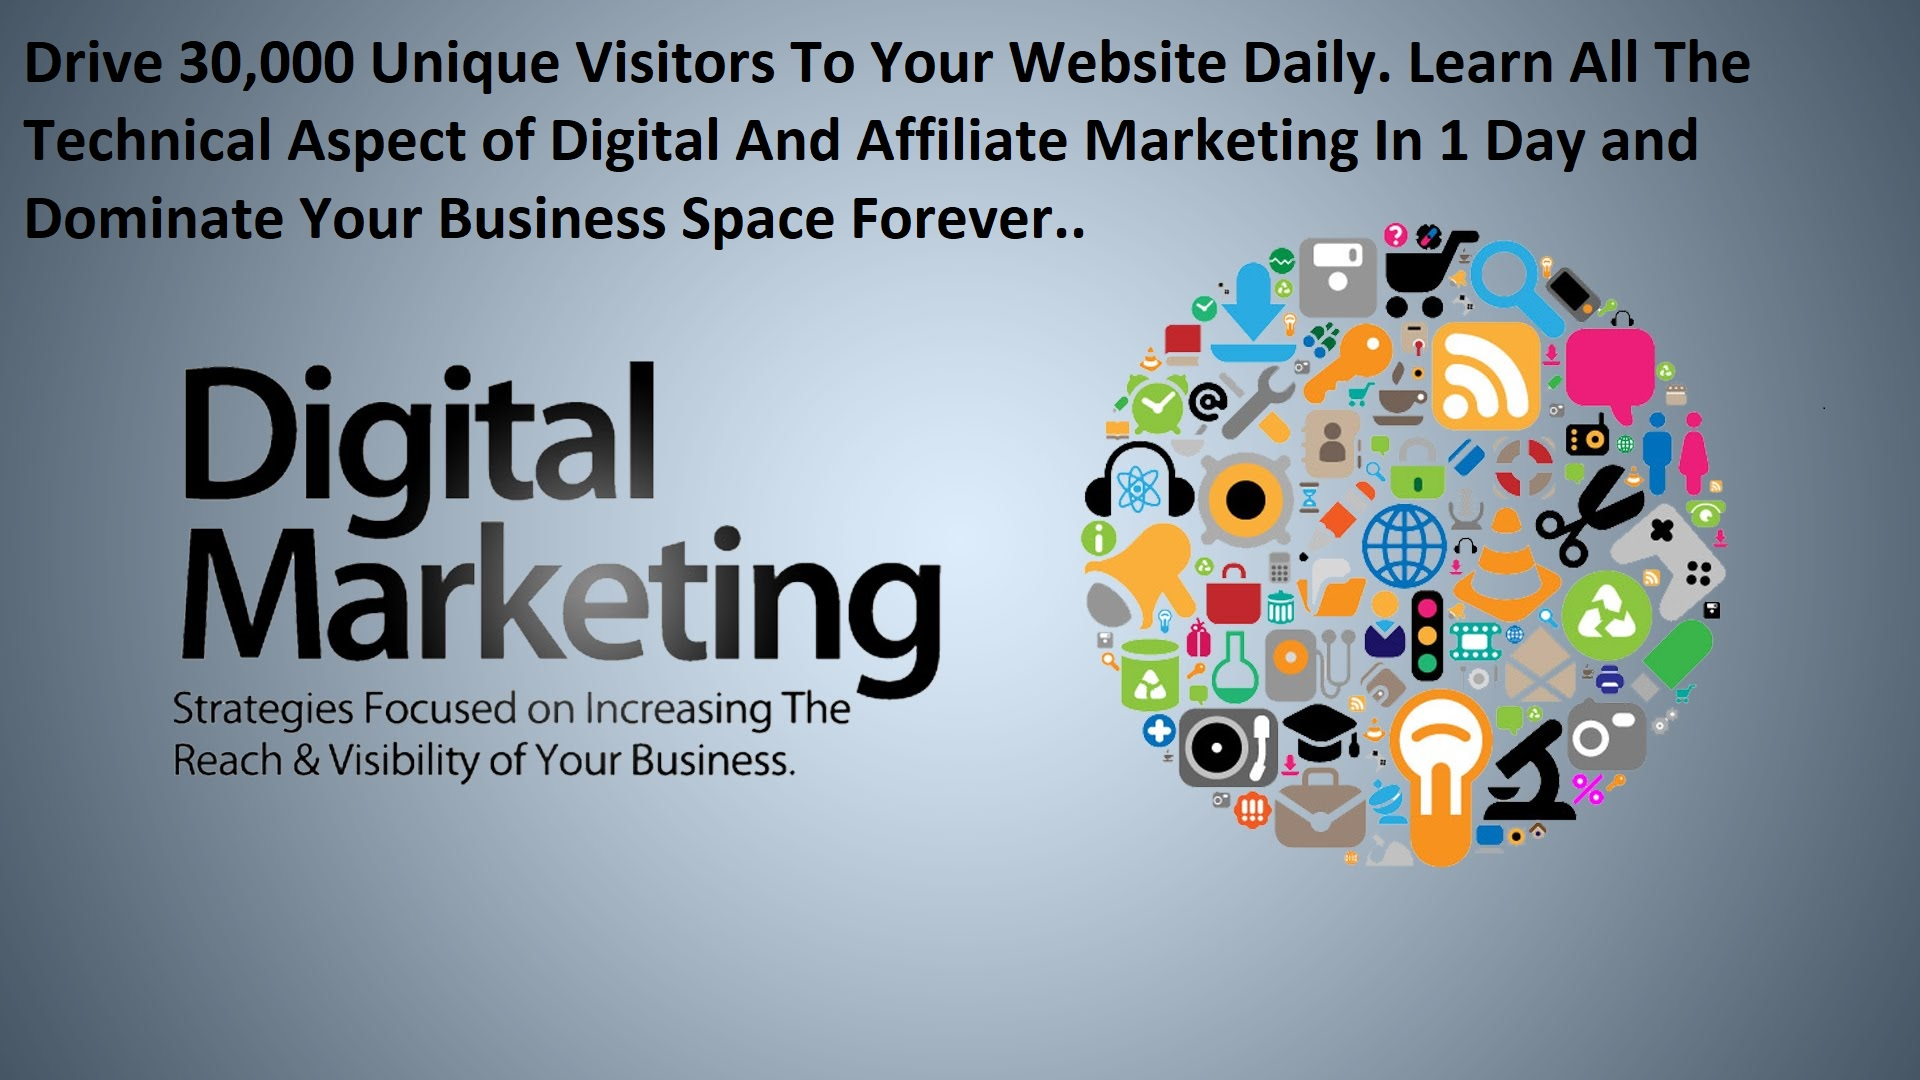 Drive 30,000 Unique Visitors To Your Website Daily. Know All The Technical Aspects Of Your Business.